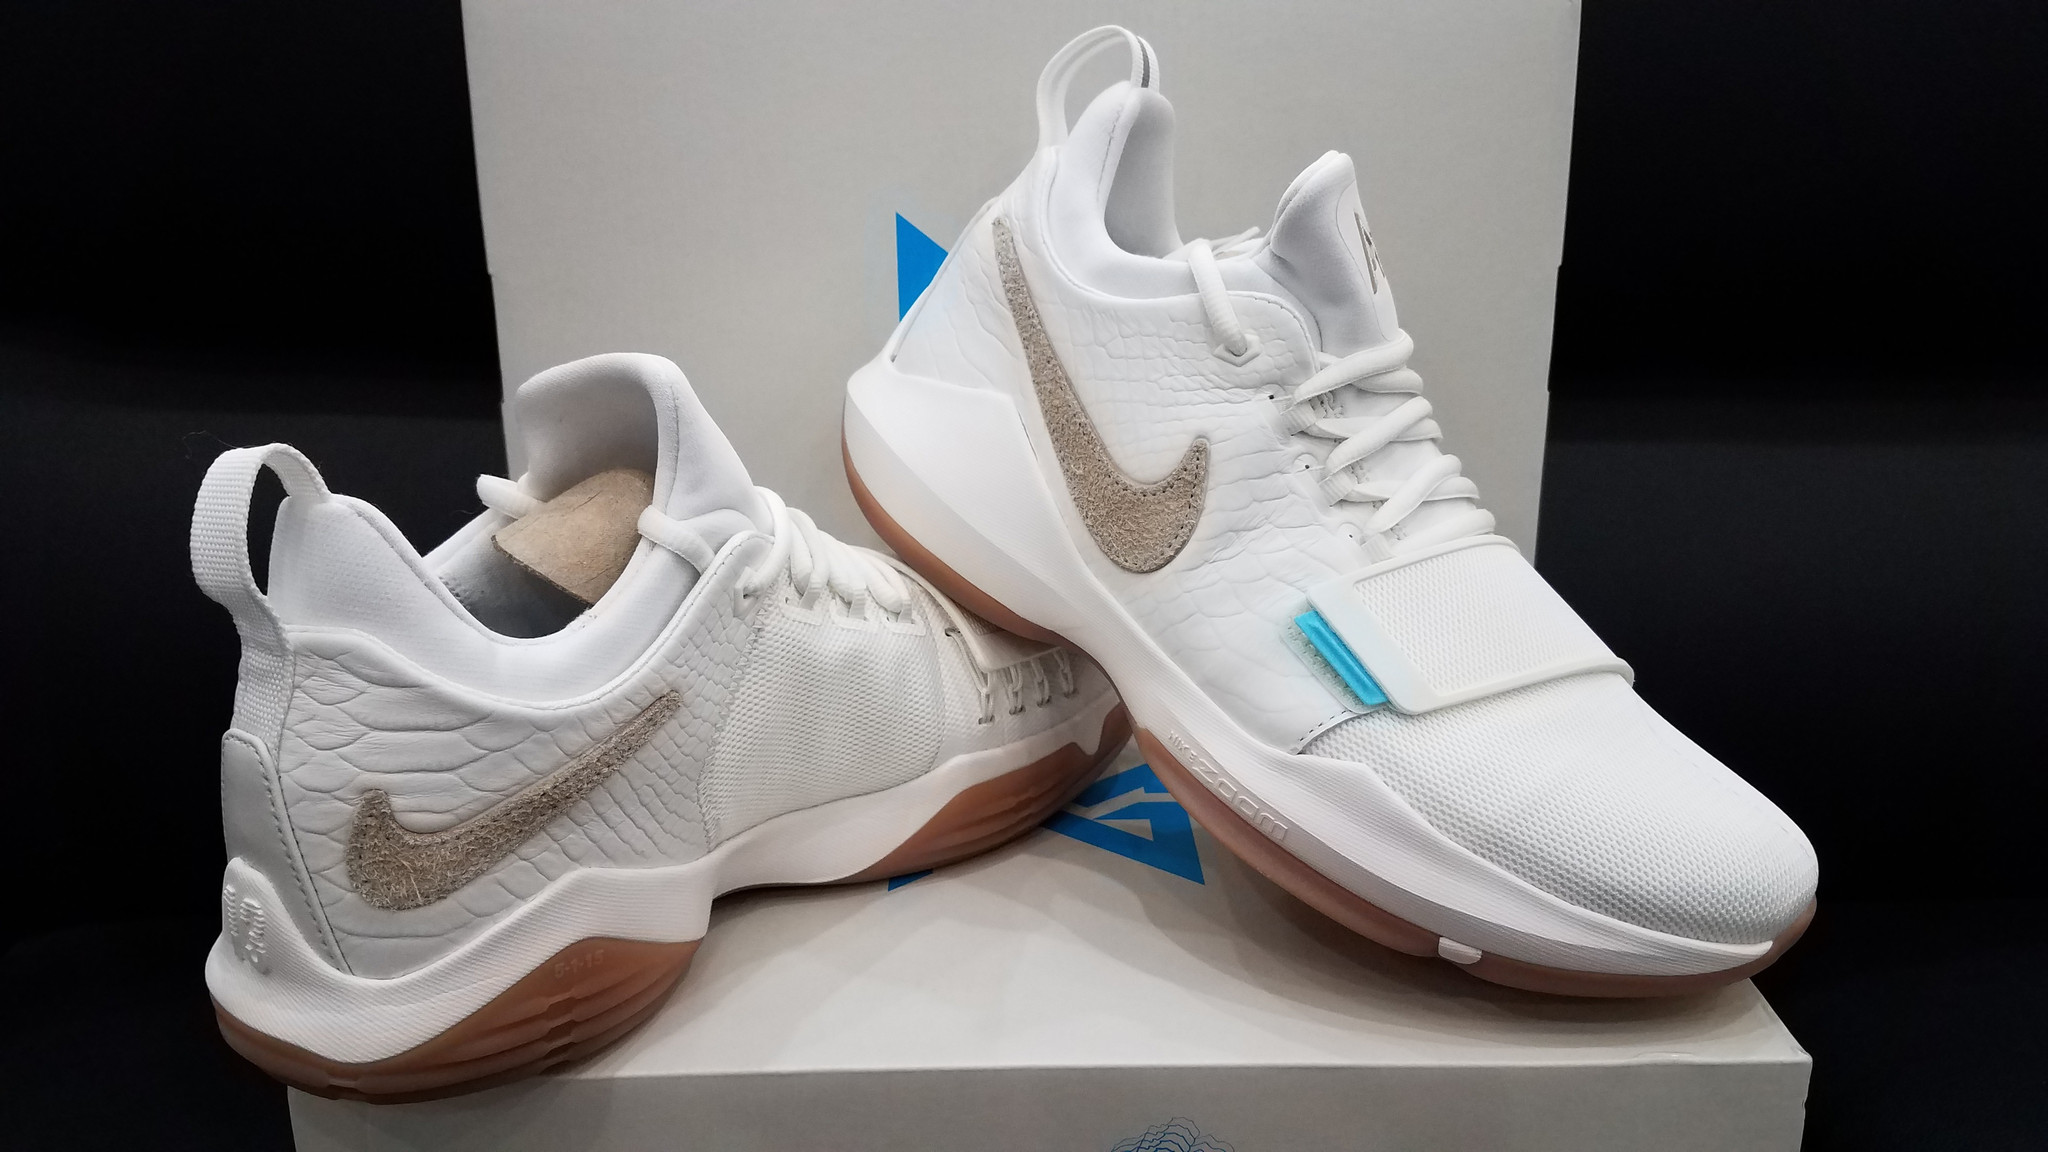 93f597951bb ... paul george ivory oatmeal gum light brown women basketball shoes 878628  dd0d3 52301  italy nike pg 1 ivory 3 d05c4 e2349